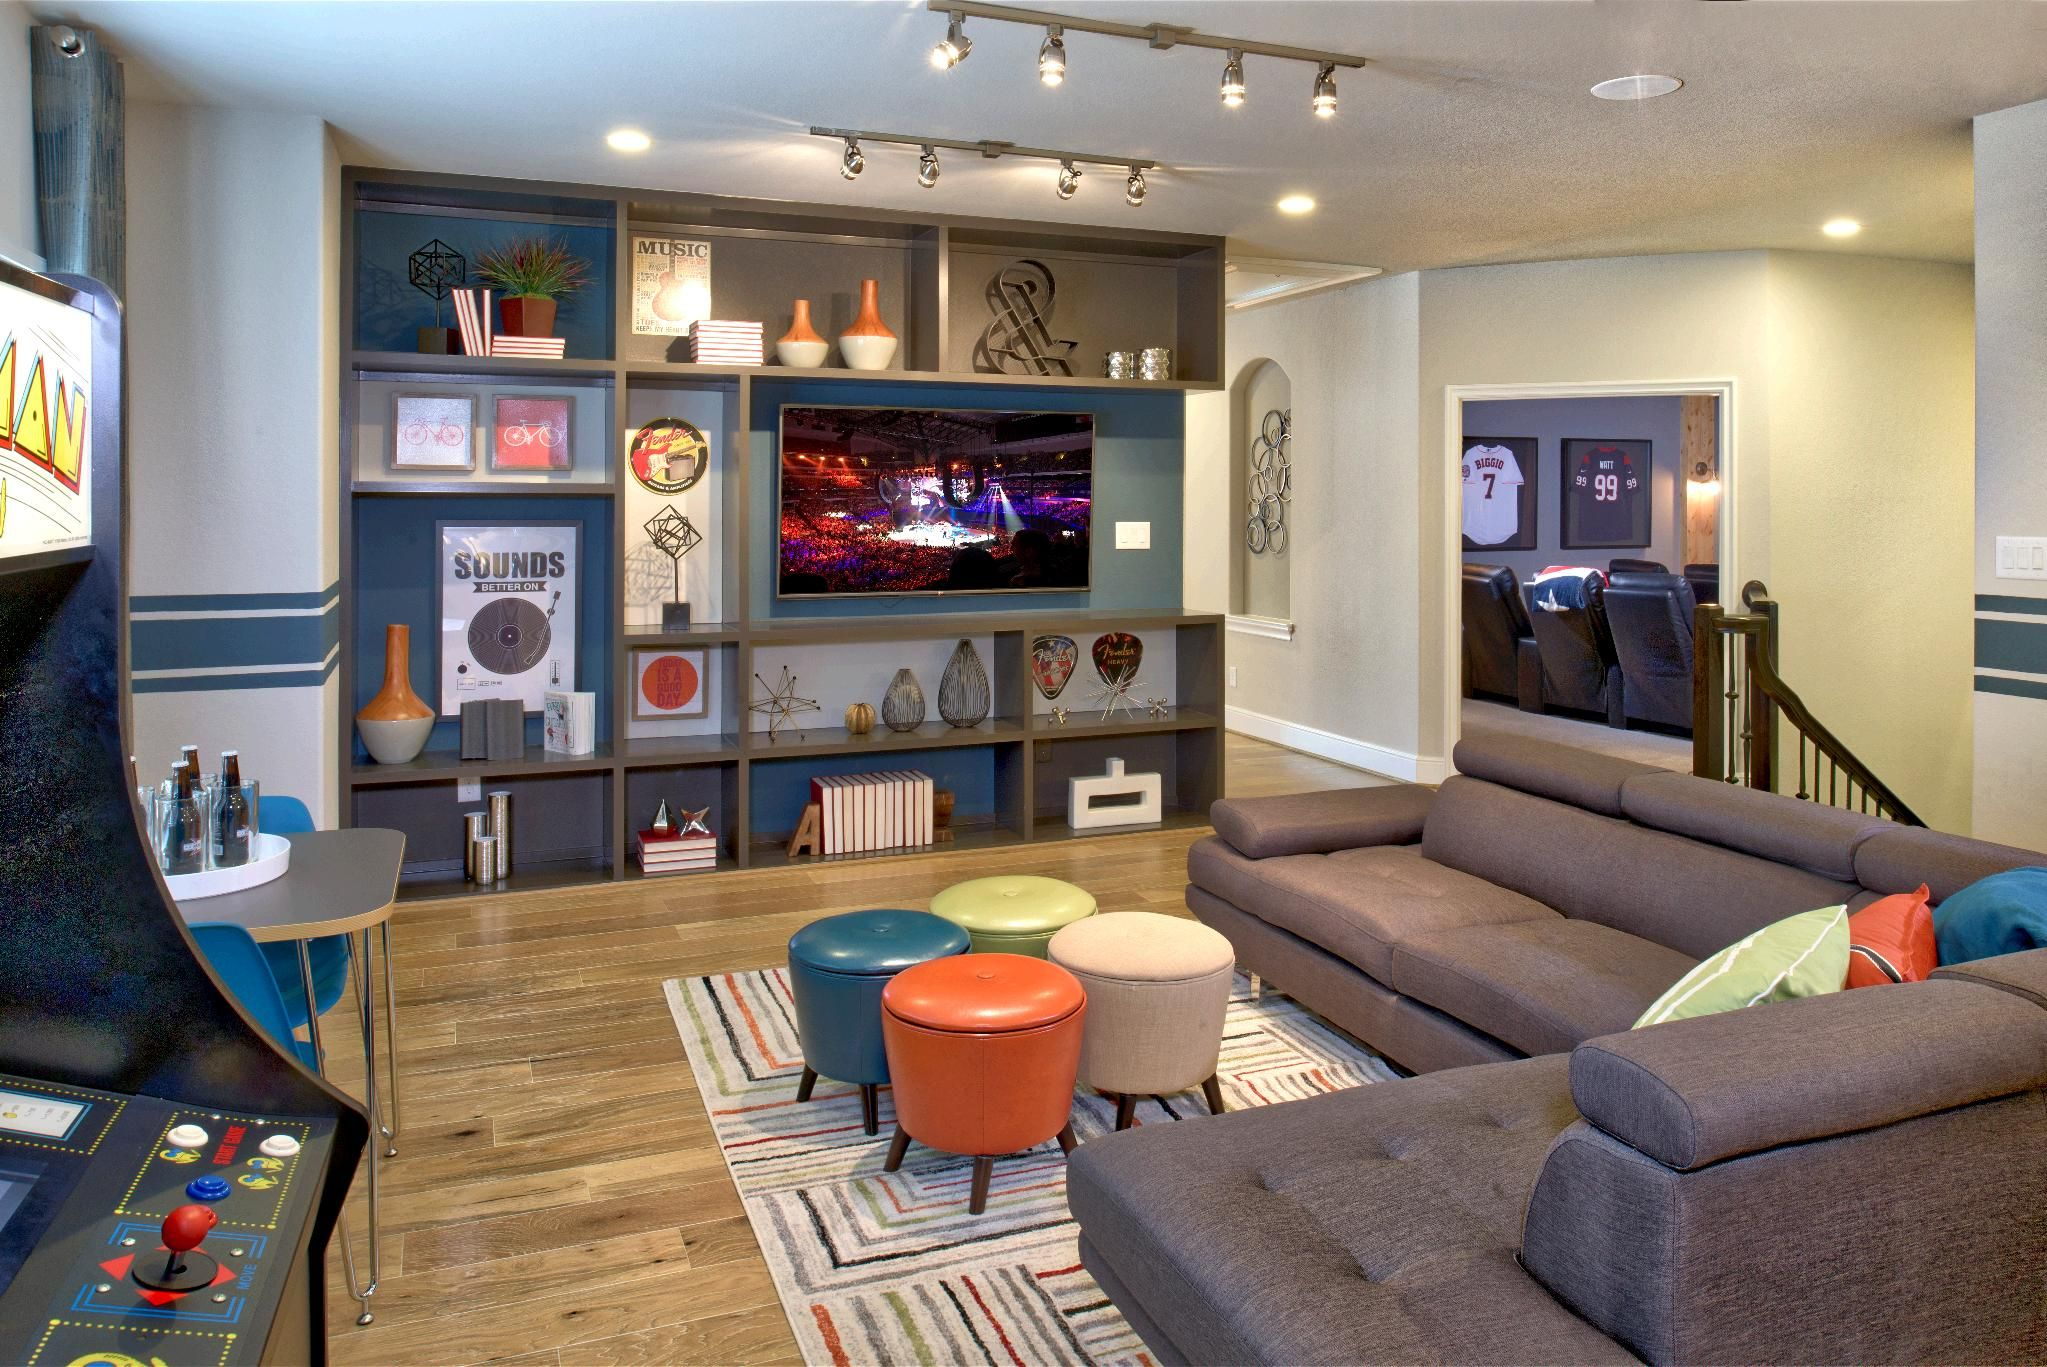 The woodlands creekside park coronet ridge in 2019 - Kids game room ideas ...